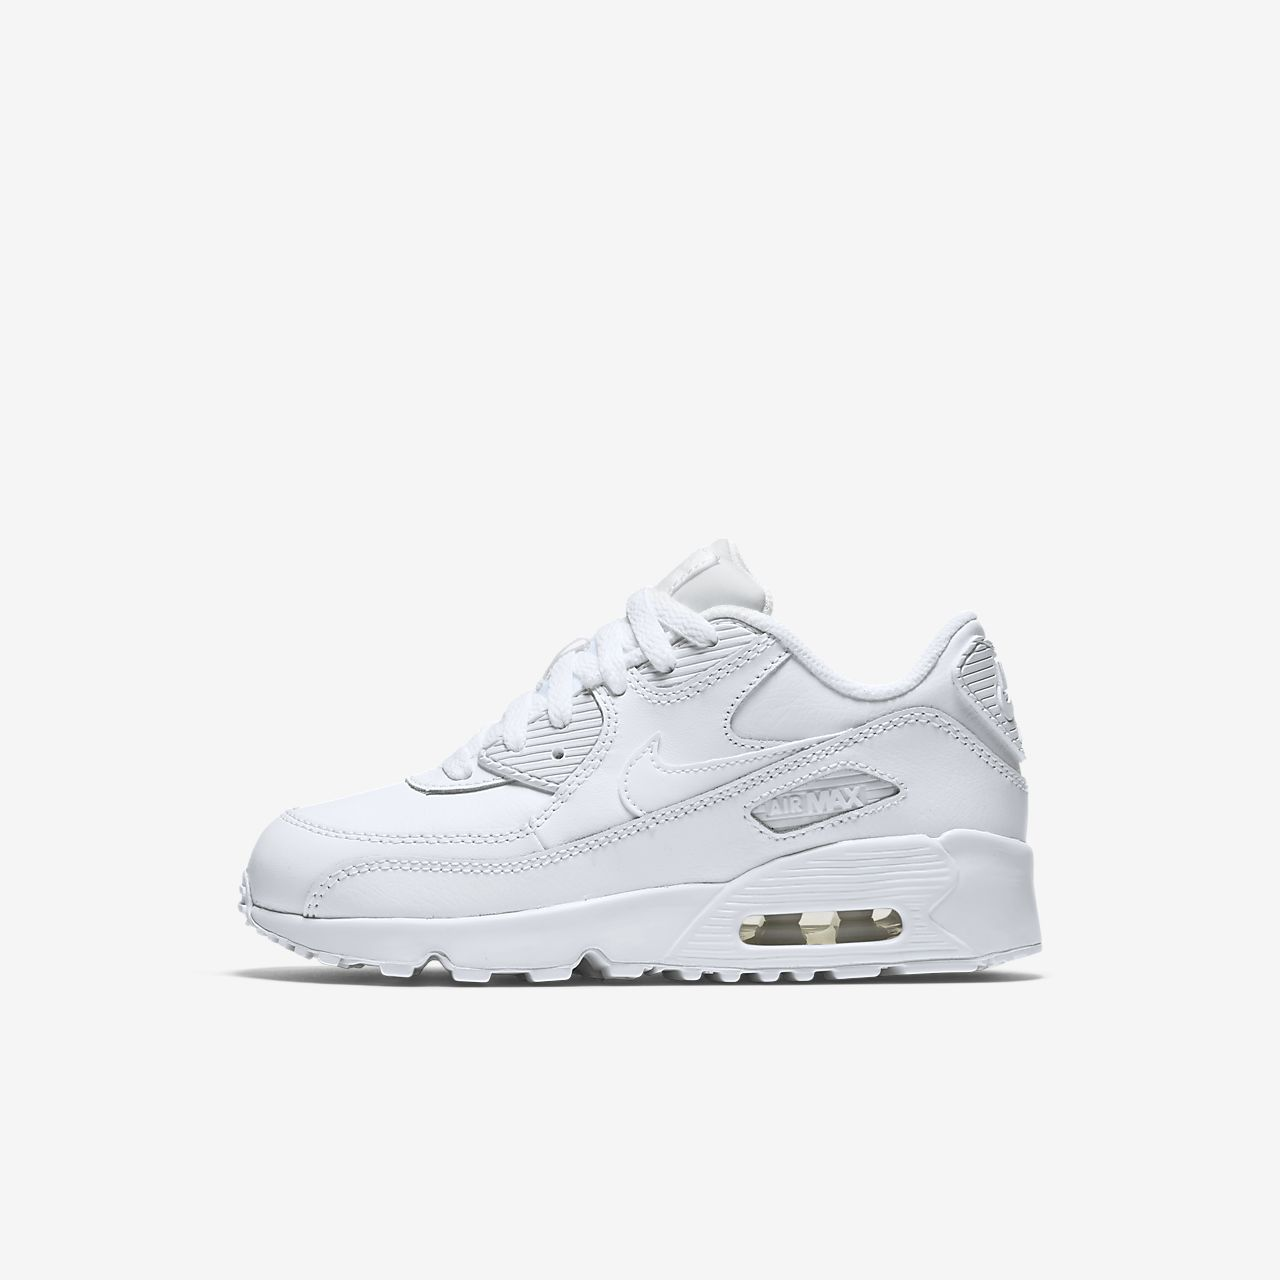 nike air max white leather Remise